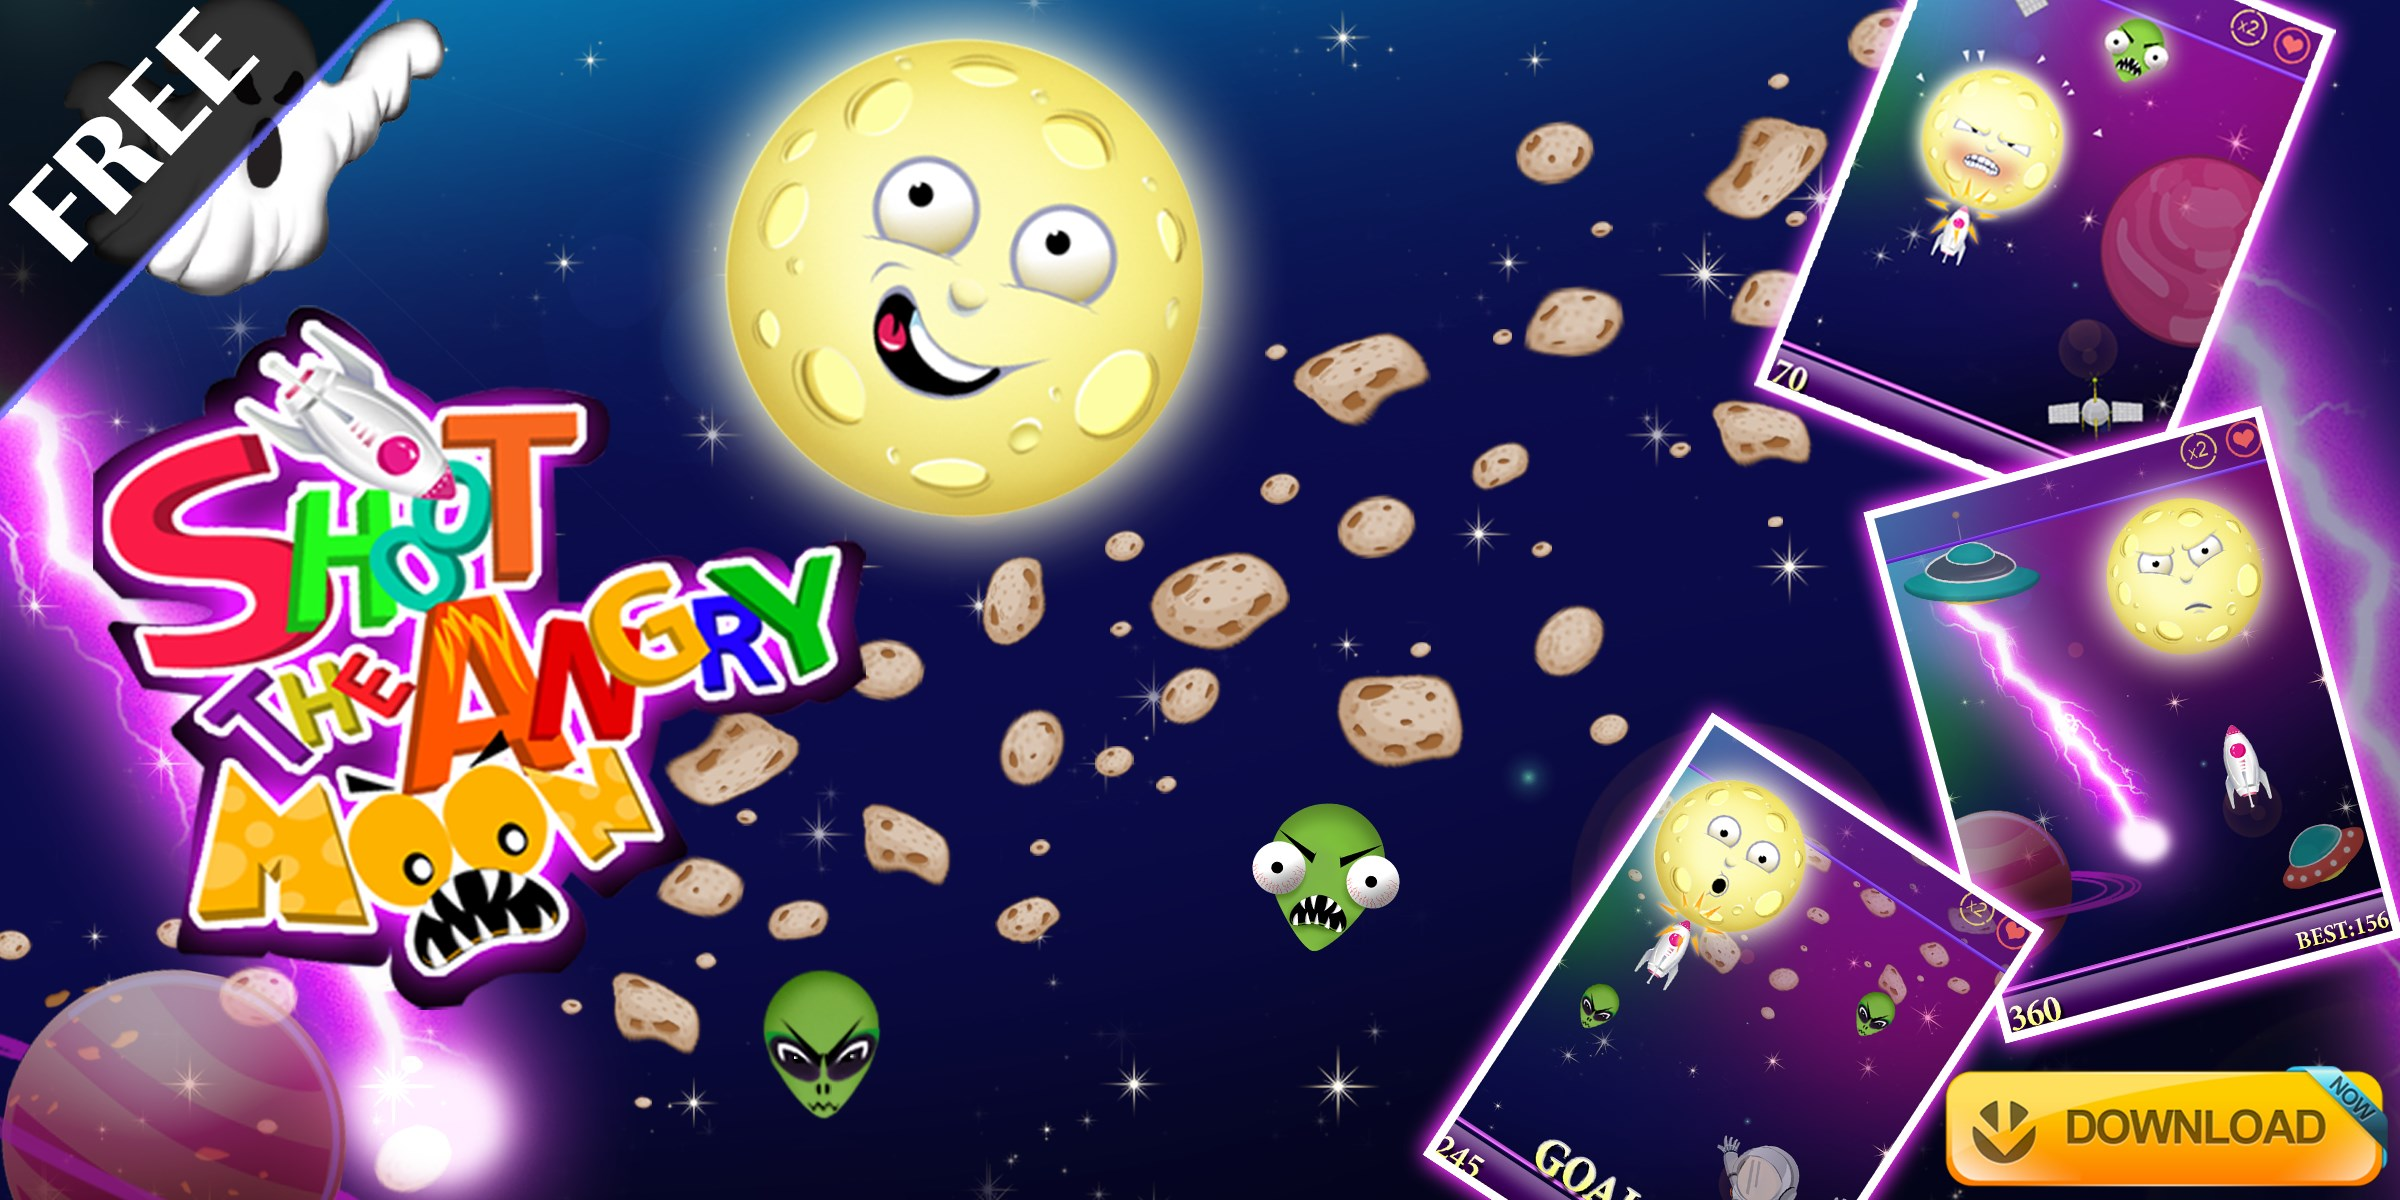 Get Shoot The Angry Moon Microsoft Store Opinvsscir Download Spice File